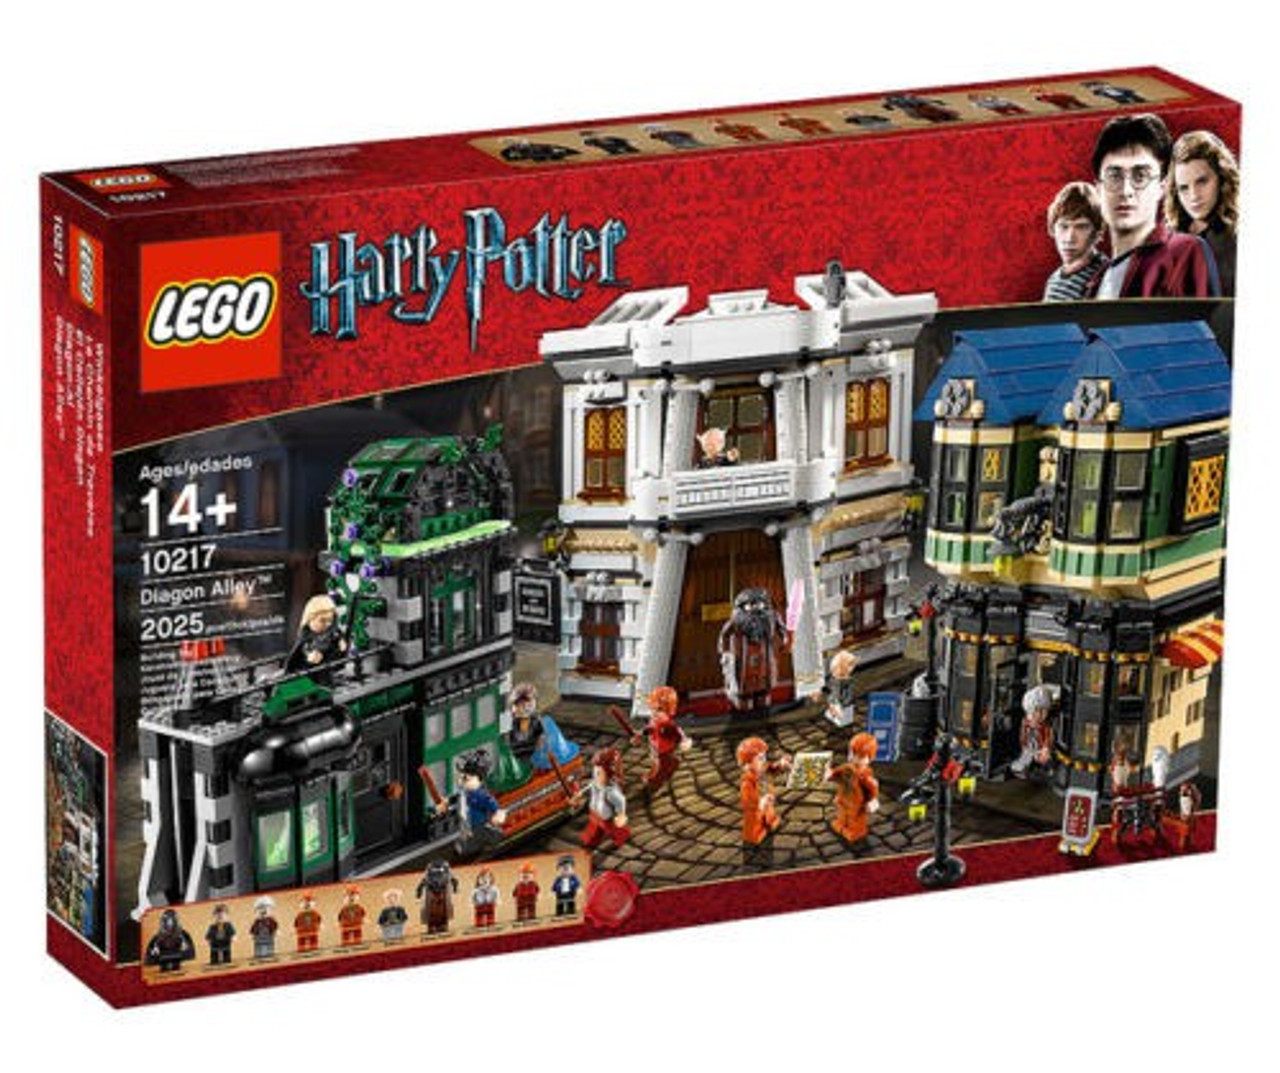 Lego Harry Potter Series 2 Diagon Alley Exclusive Set 10217 Toywiz